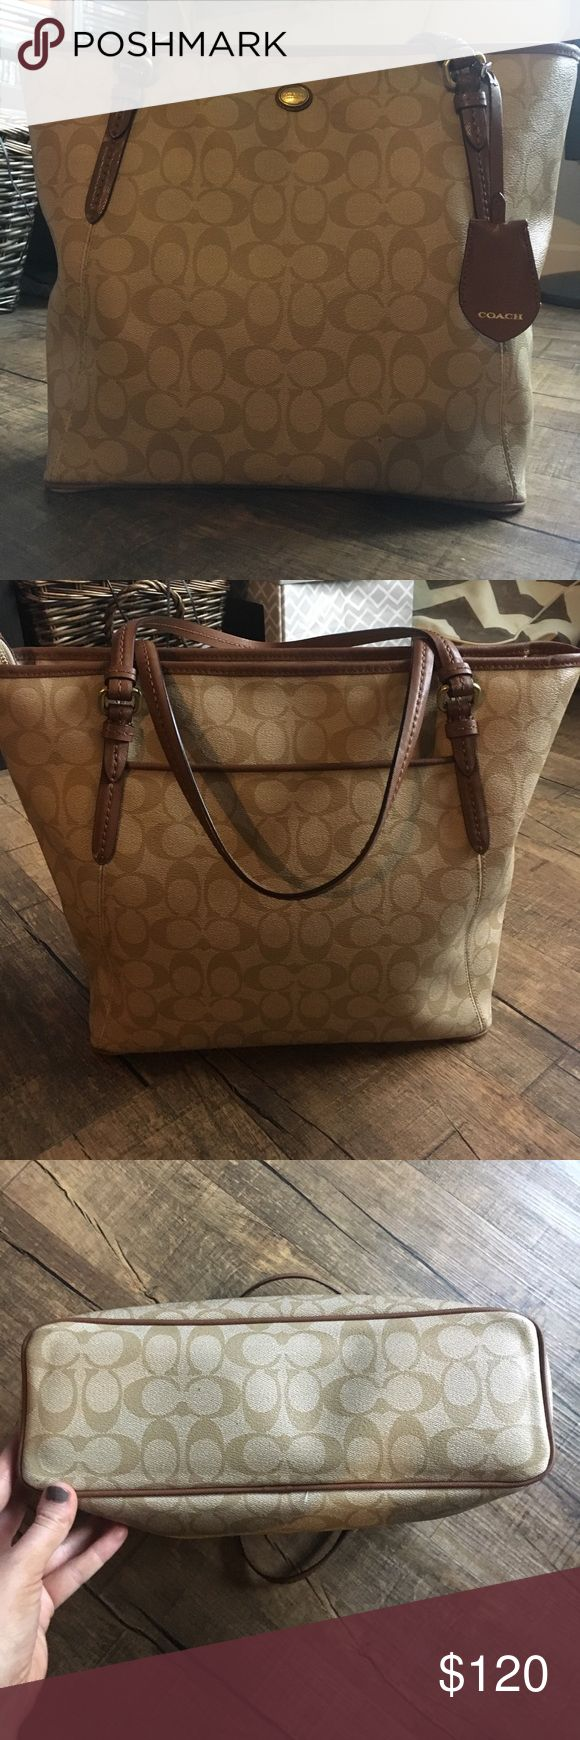 Large Coach Tote Bag Large Coach Tote, like brand new. No stains, scratches, or rips. Both zippers work fine. 15x11x4 Coach Bags Totes